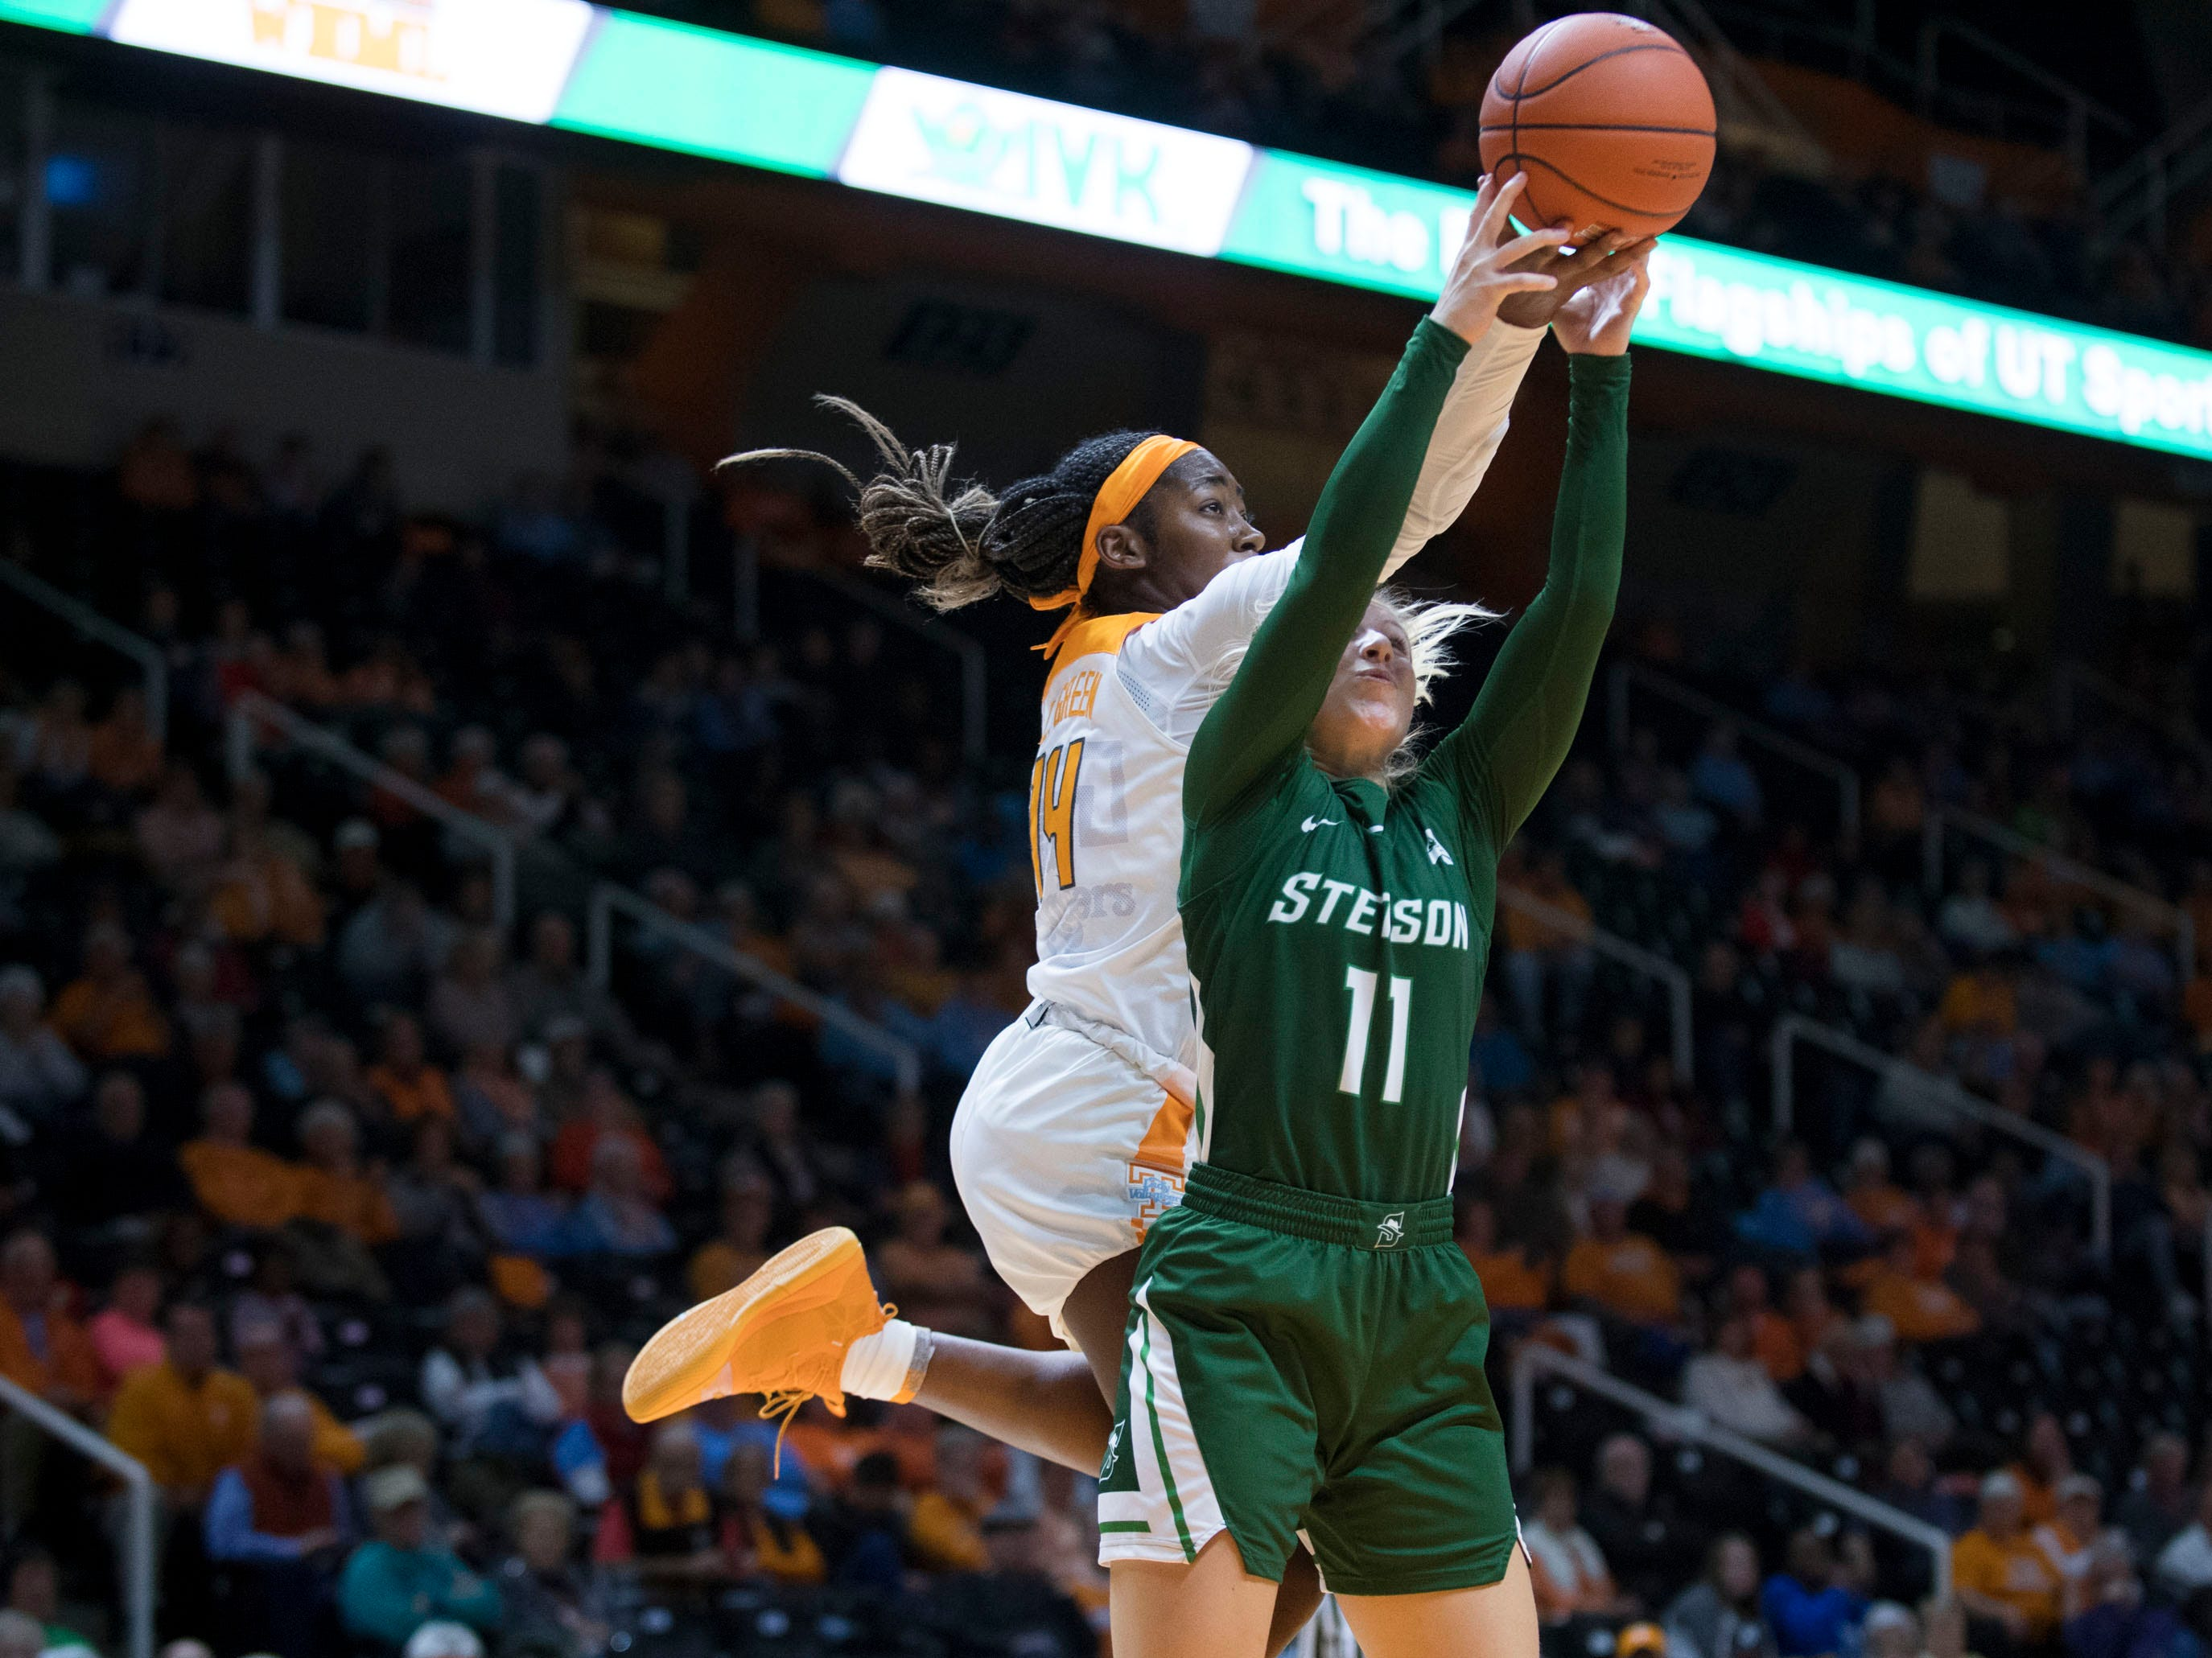 Tennessee's Zaay Green (14) tries to get the rebound over Stetson's Addi Walters (11) on Wednesday, December 5, 2018.